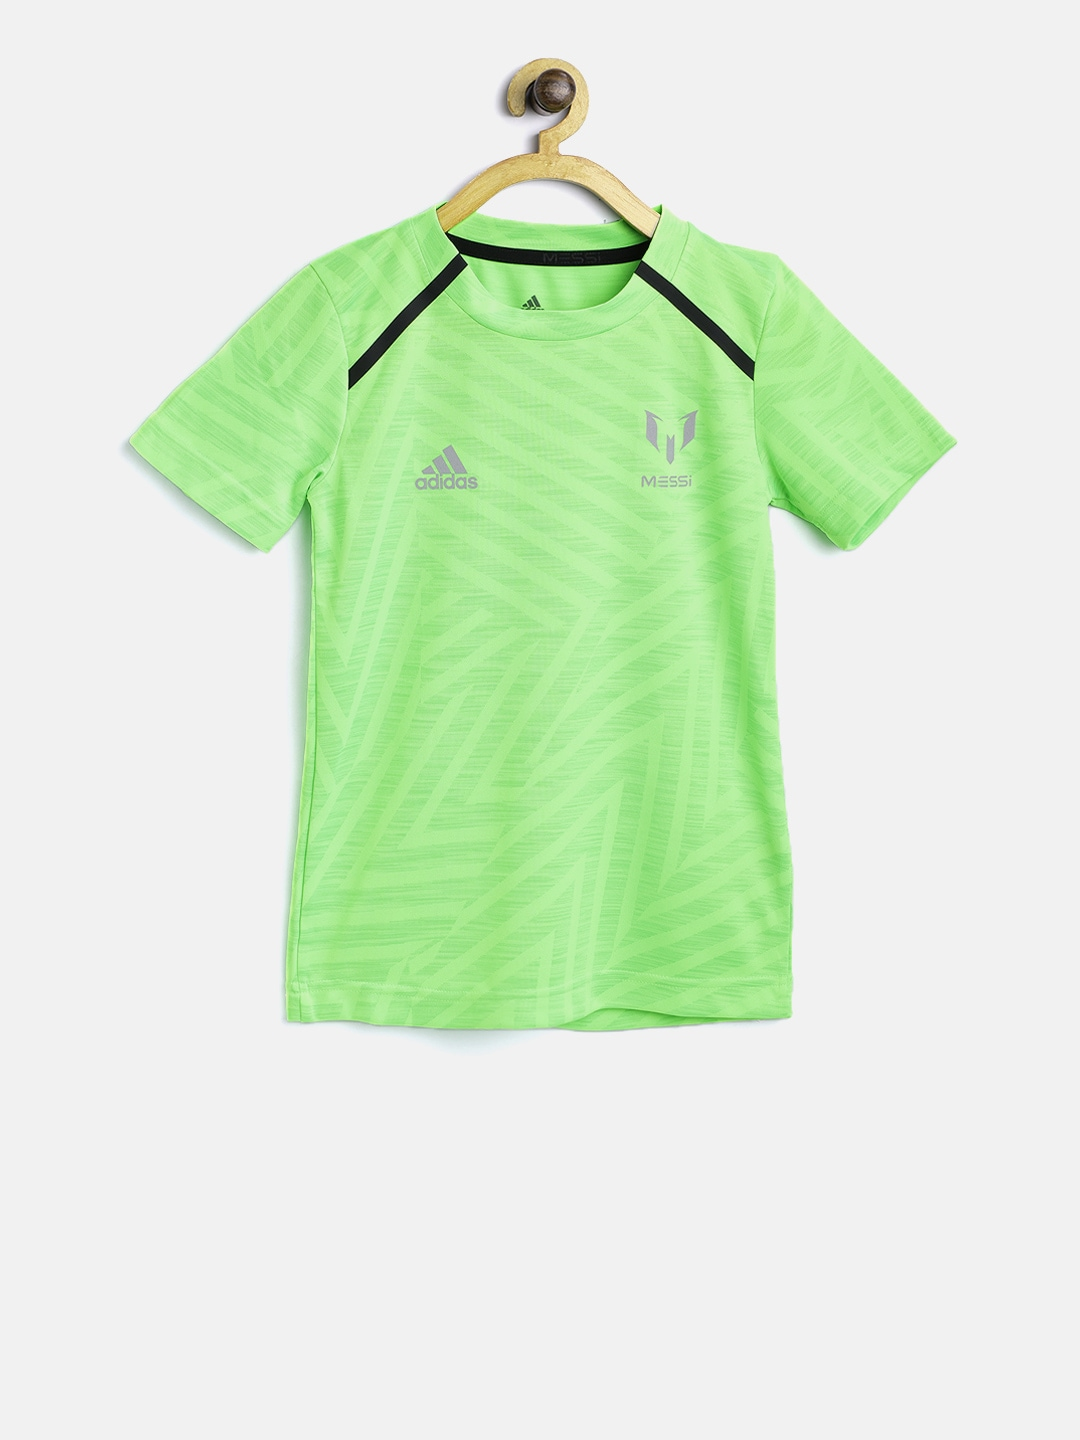 f265a1486 Adidas Argentina Jersey - Buy Adidas Argentina Jersey online in India